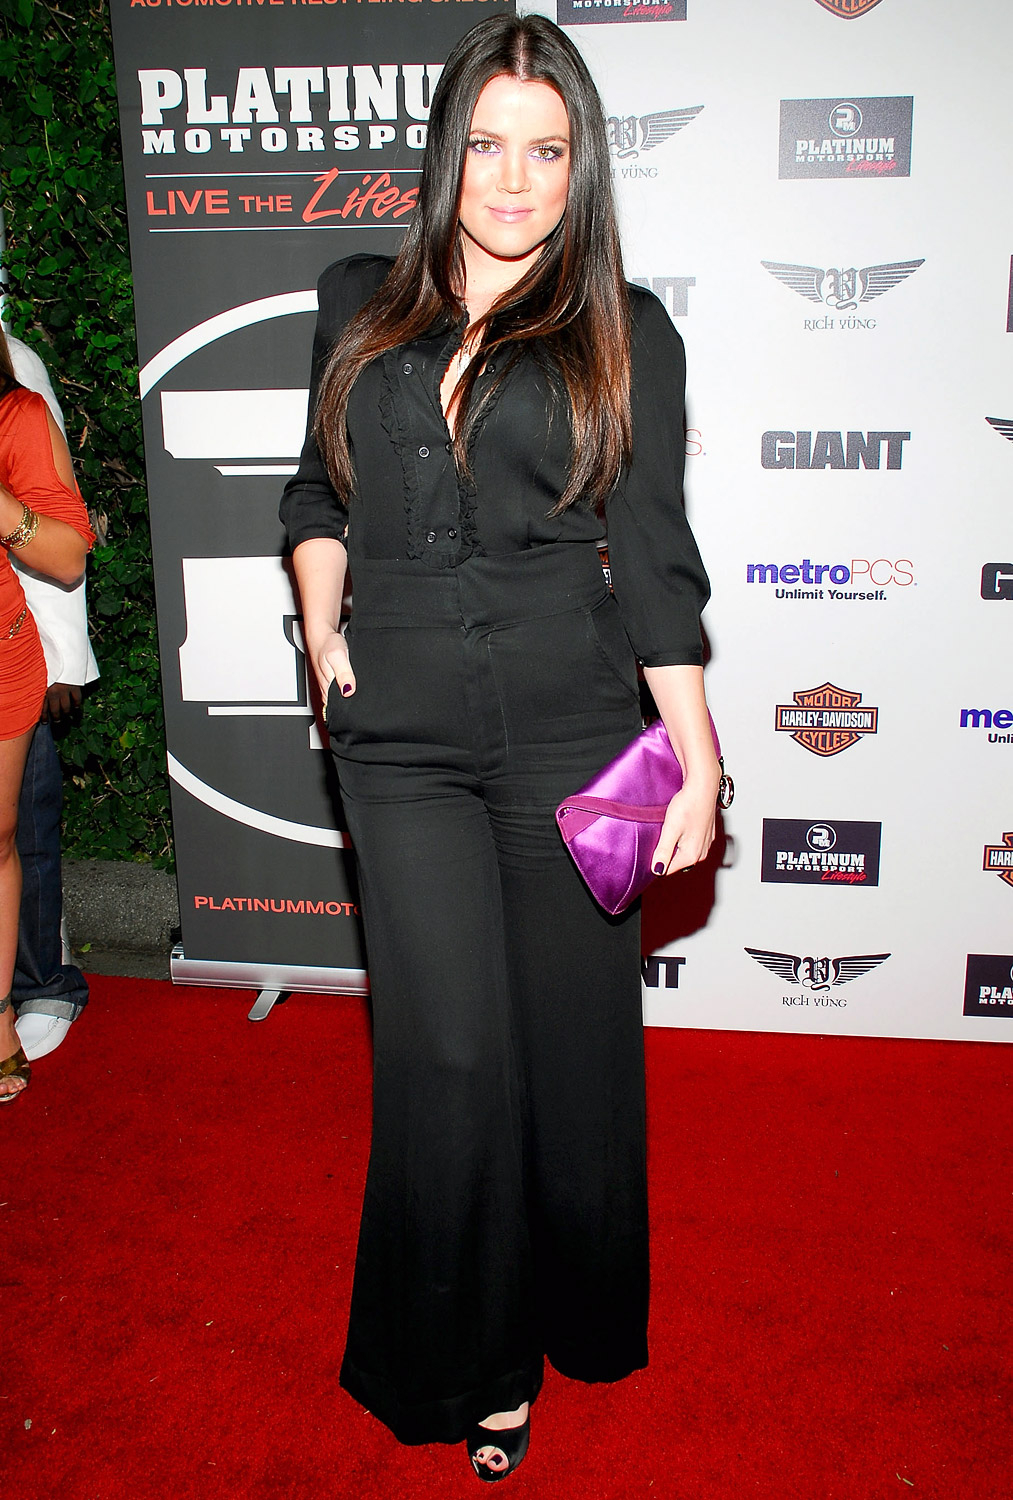 """When Khloé Kardashian and her family let viewers into their household for a new E! reality show in 2007, the """"tough skinned"""" Kardashian had no idea how mean some viewers and online critics would be—instantly billing her as """"the fat sister."""" """"It's like being brain-washed: You think, 'Do I have a distorted body image and think I'm not as big as I am?'"""" she has said."""